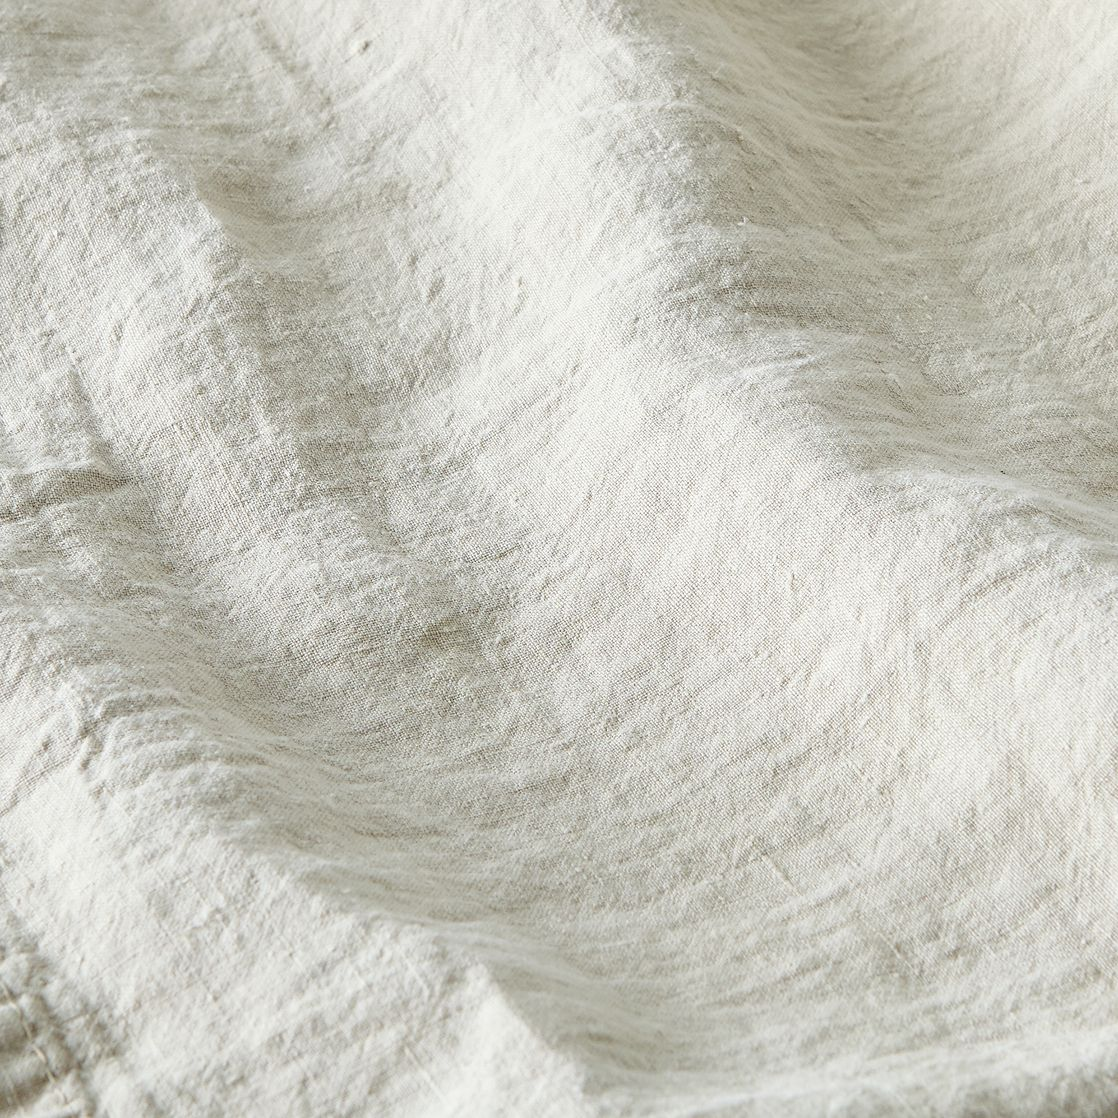 Stonewashed Linen Bedding (Queen) on Food52.